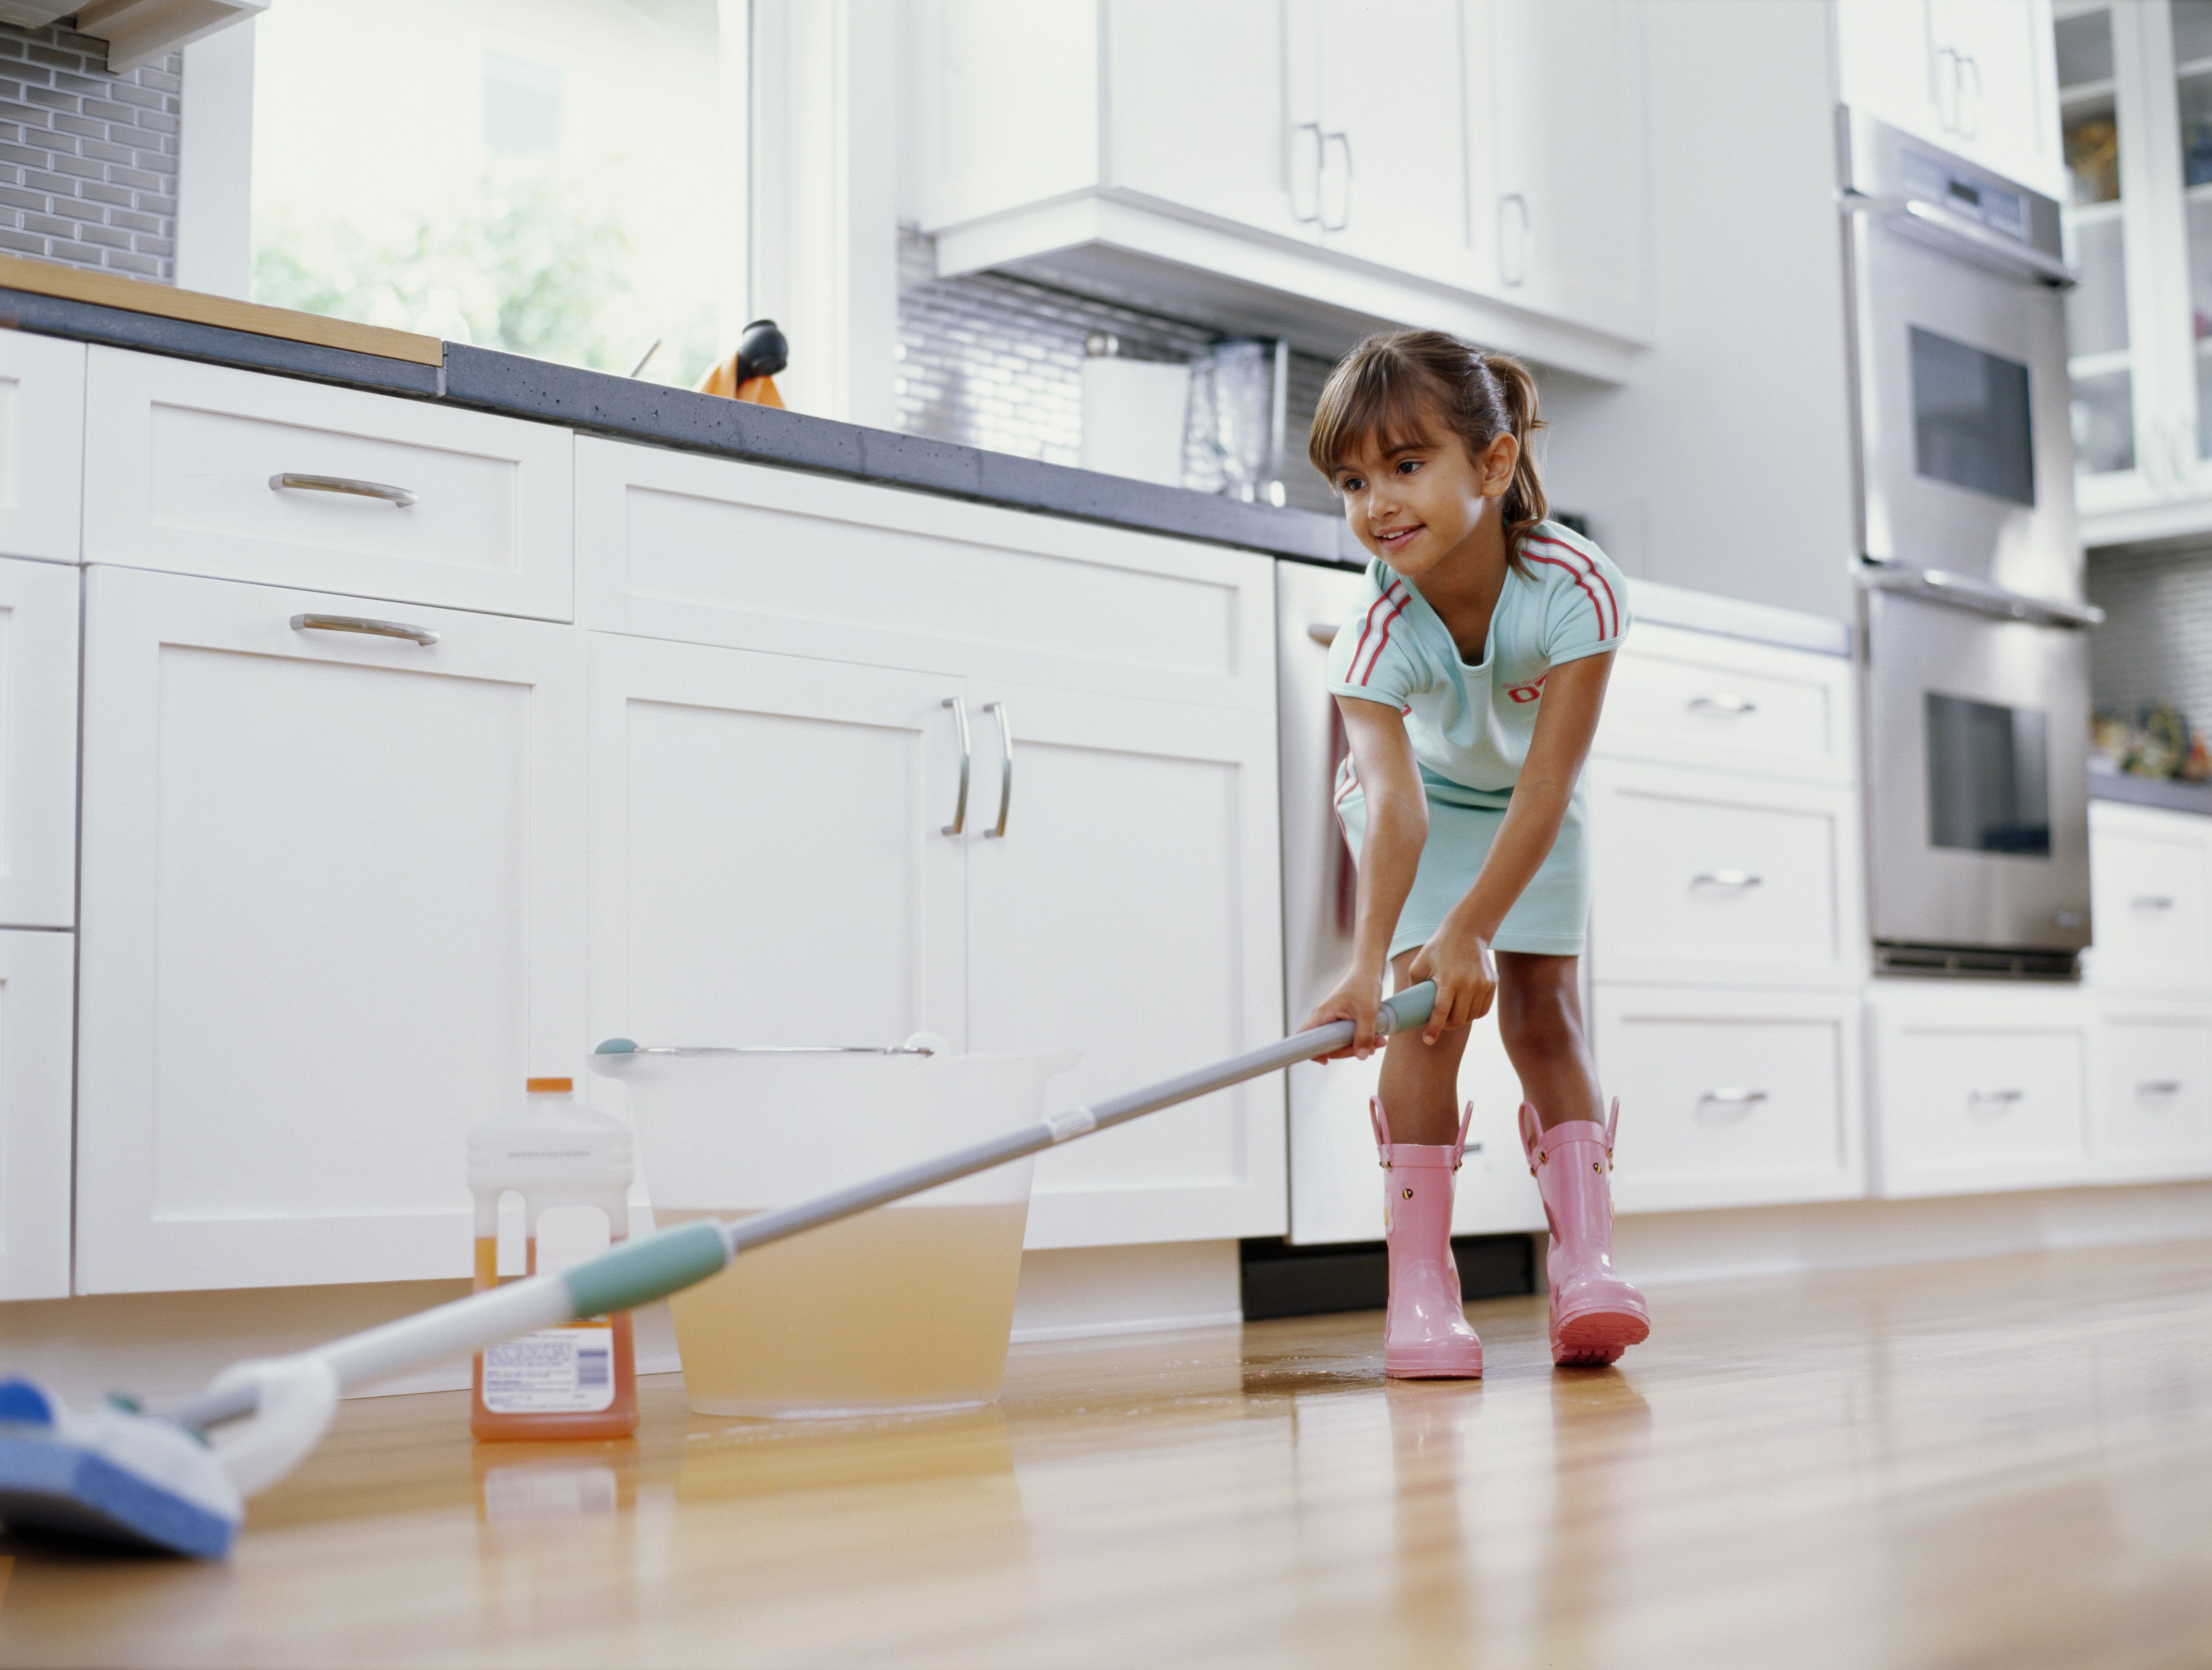 hardwood floor mop kit of 6 common mop types and what to use them for pertaining to girl 6 8 cleaning kitchen floor with mop smiling low angle view 200283537 001 59fb7c63845b34003850e855